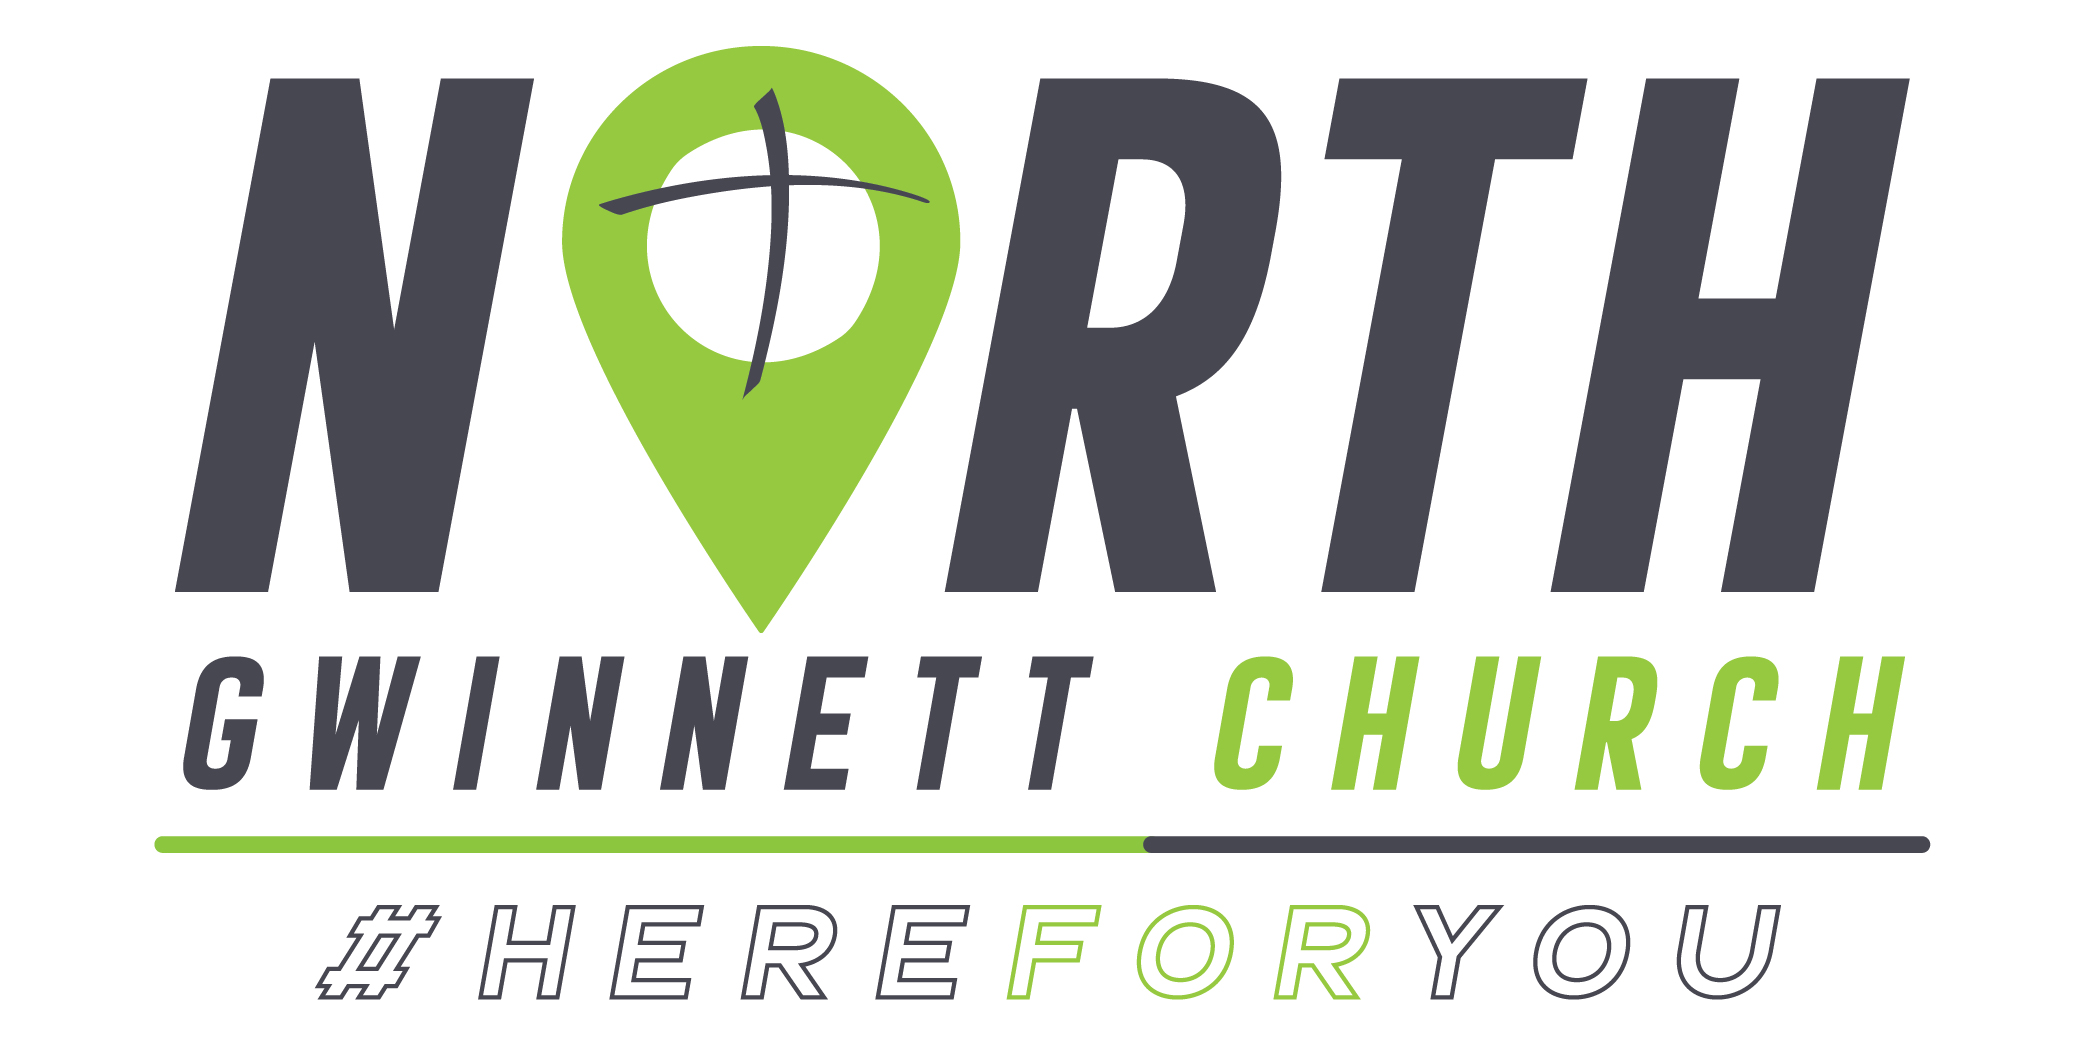 #HereForYou - We're proud of the fact that North is a family church and that our pastors and staff are accessible. We're here for you.